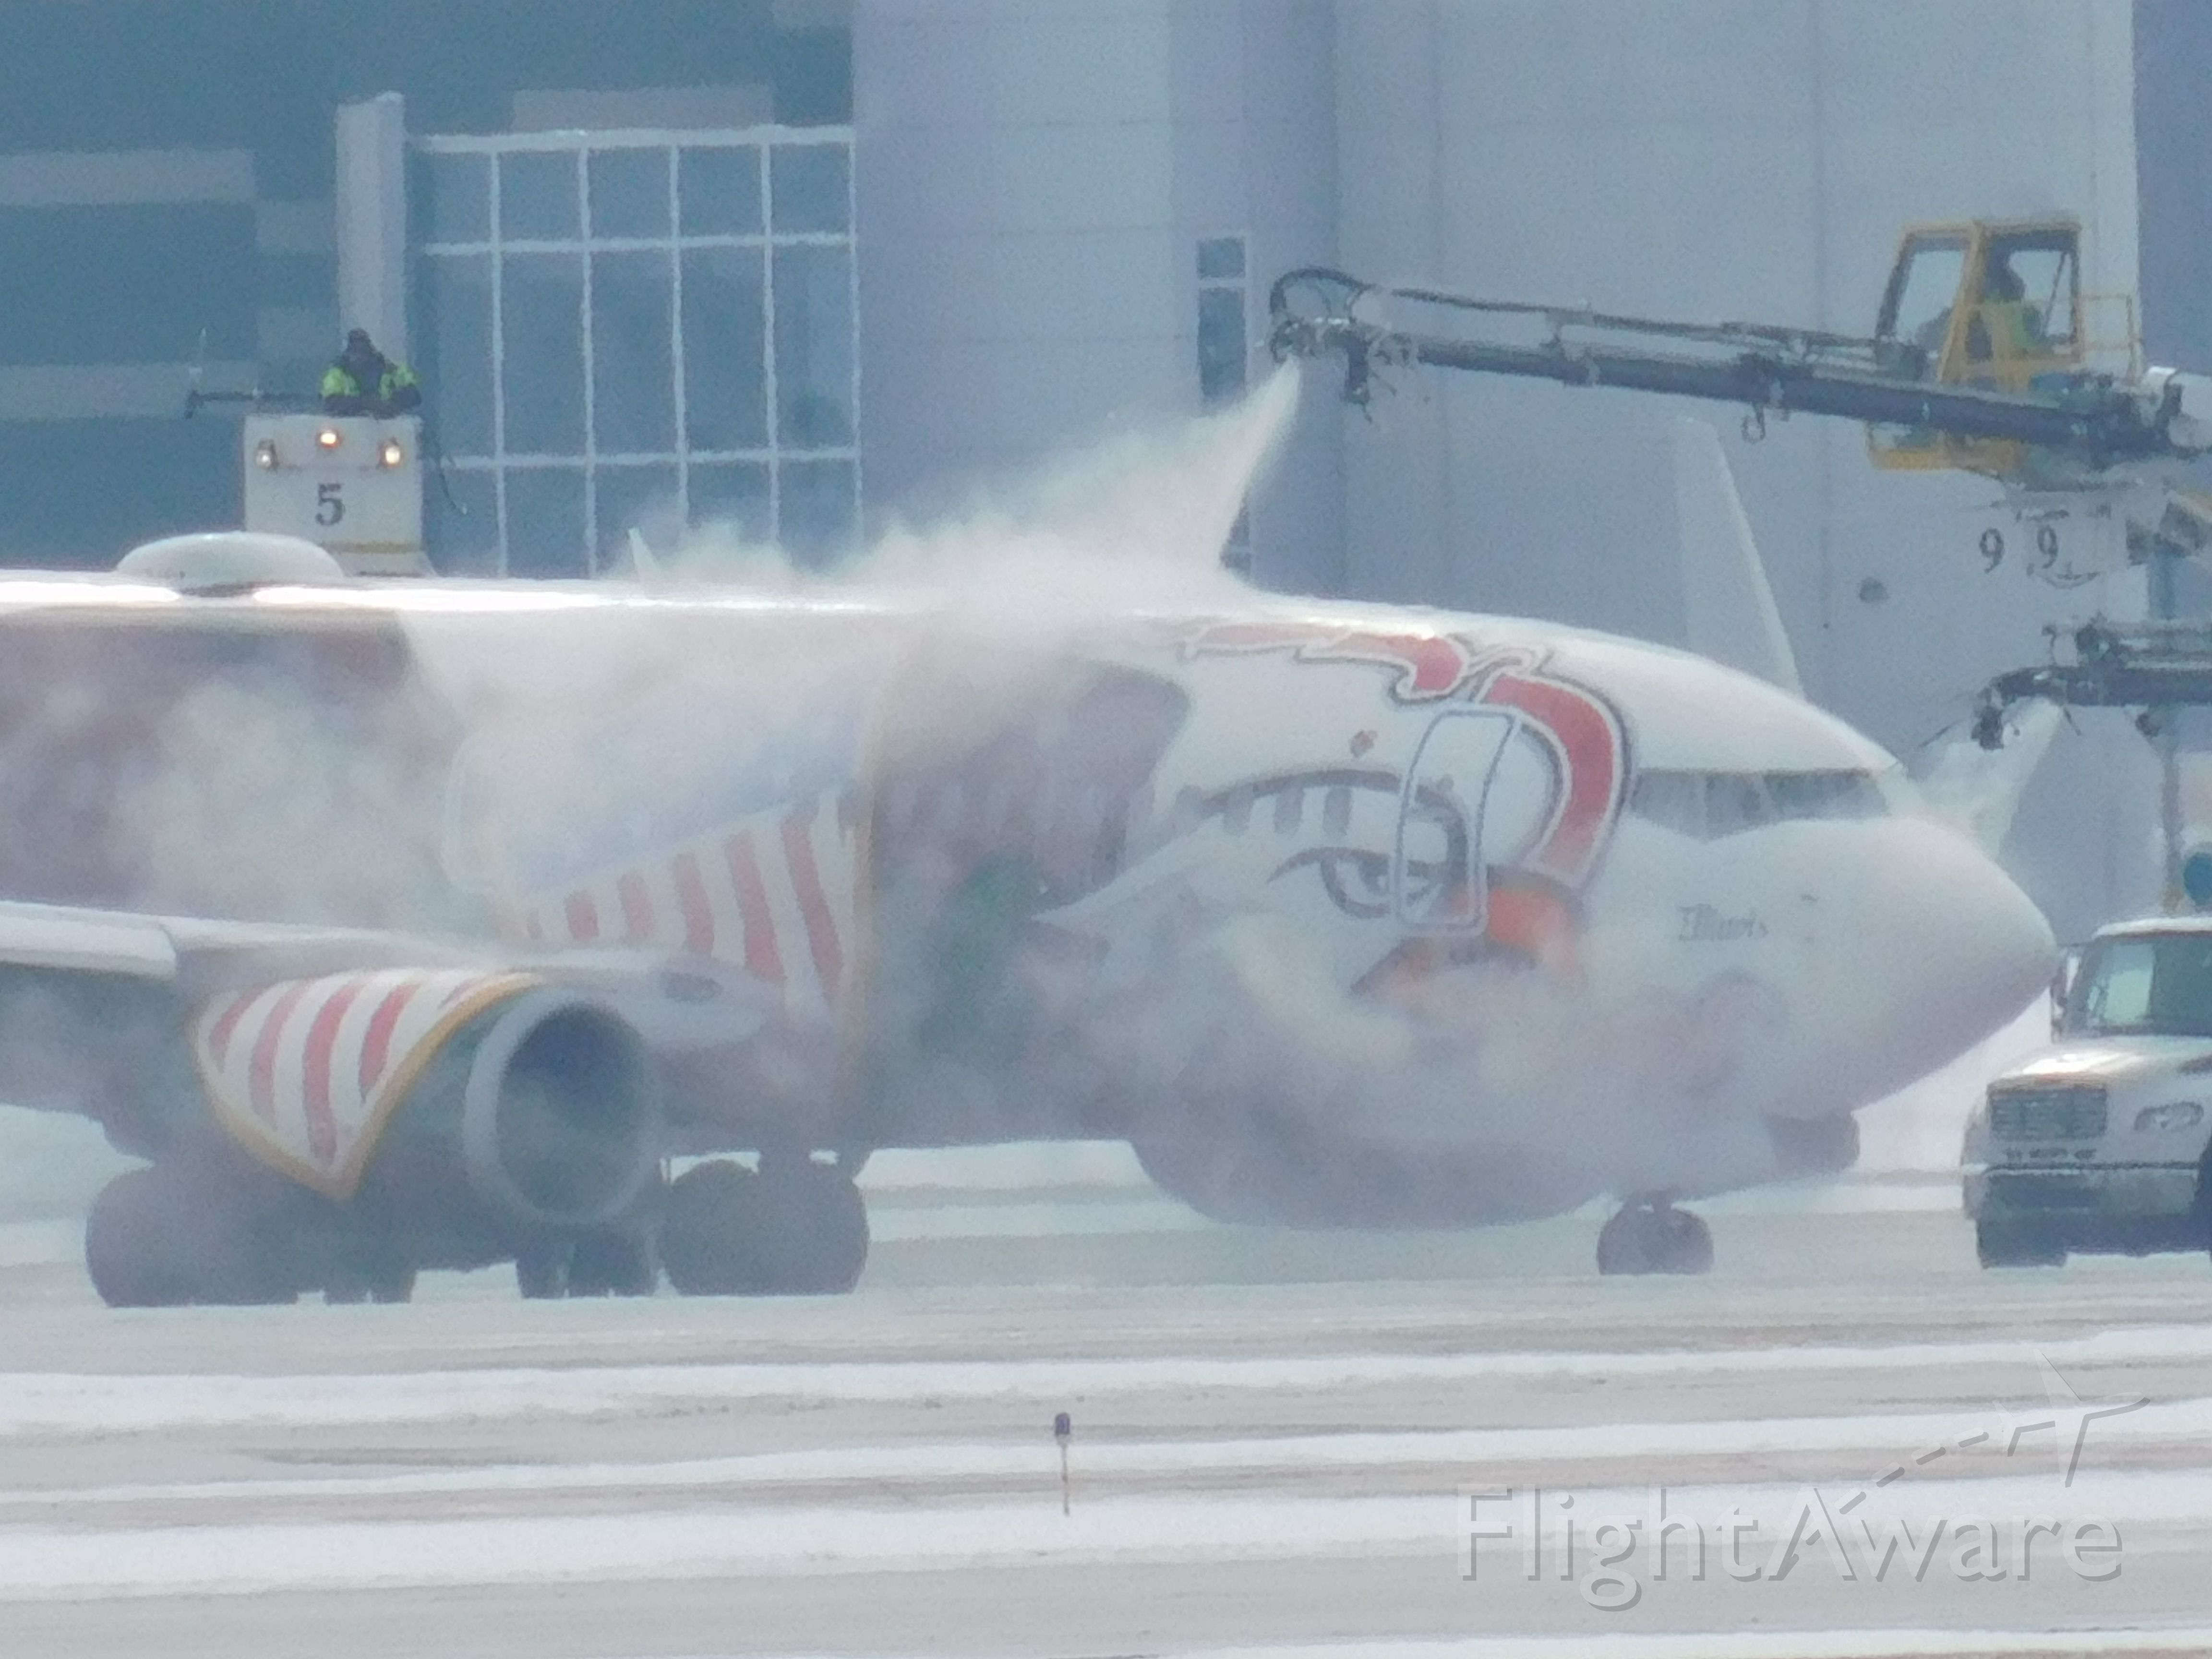 Boeing 737-700 (N918WN) - The smothering De-Ice on this southwest jet